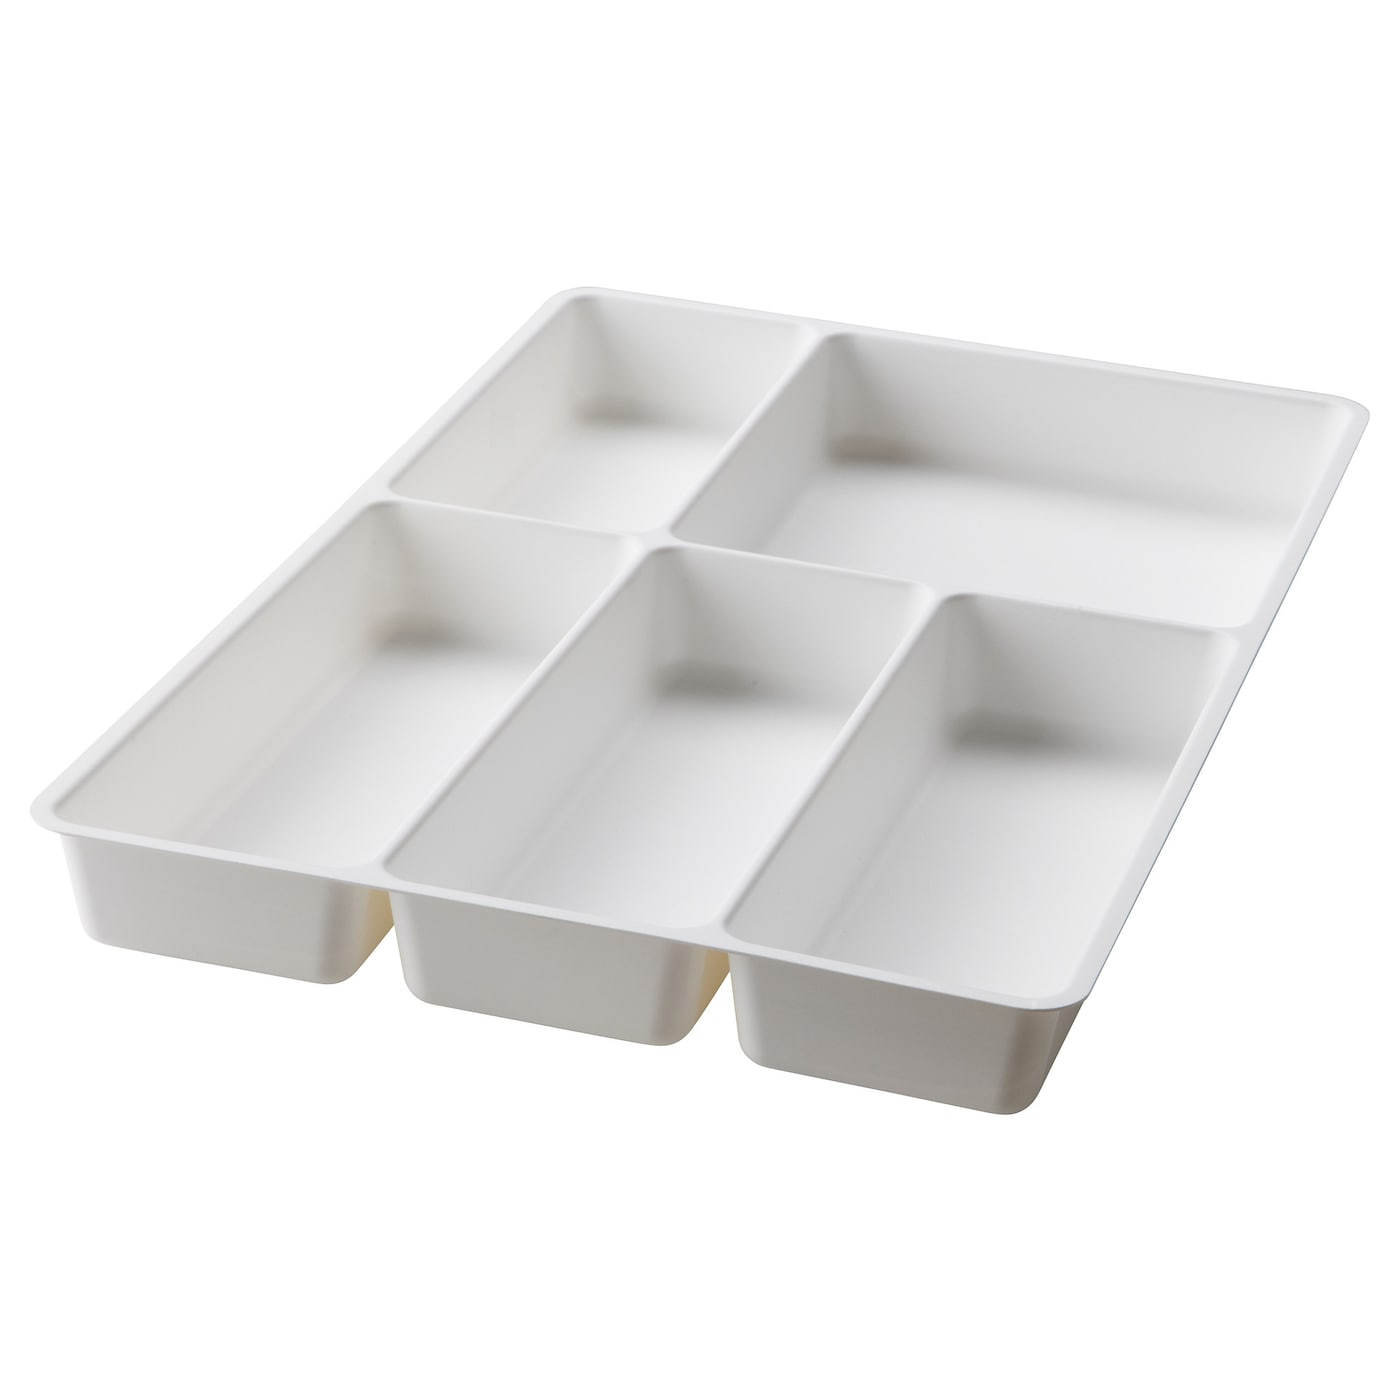 St dja cutlery tray white 31x50 cm ikea for Bureau 70 x 50